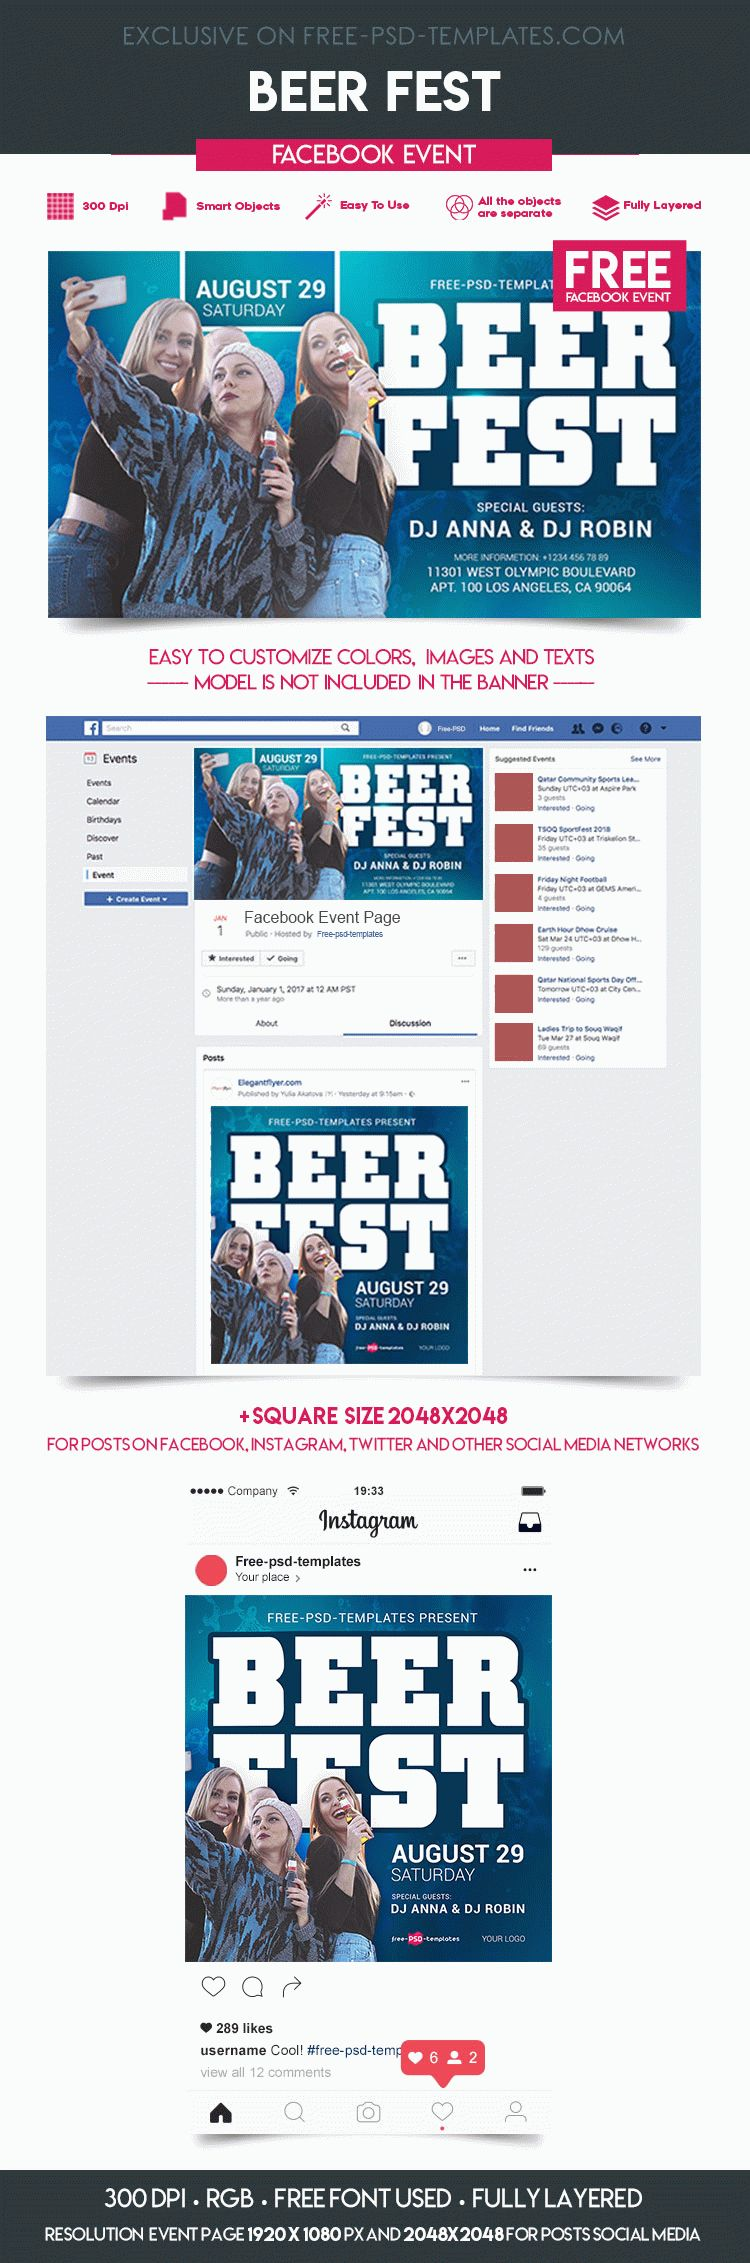 Free Beer Fest Facebook Event Page Free Psd Templates